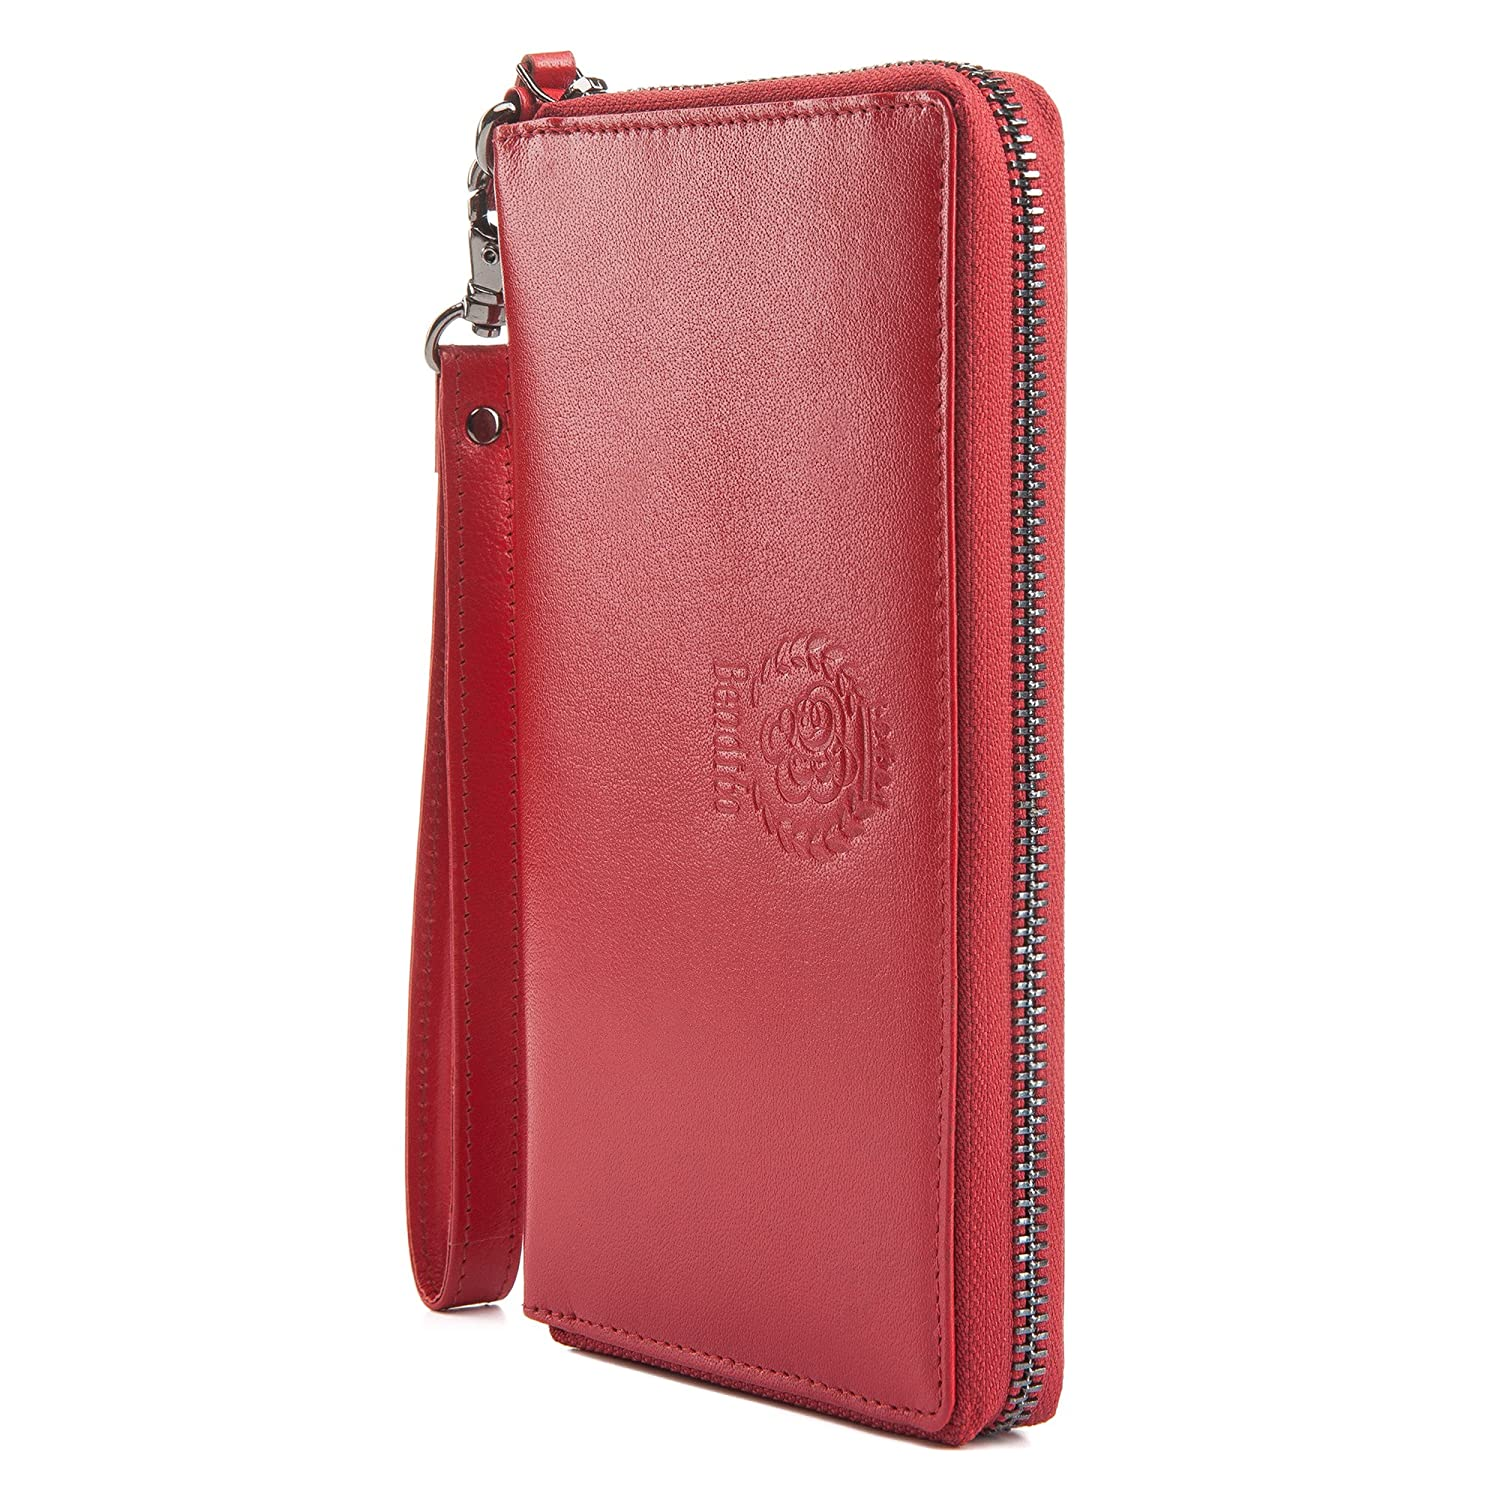 OPTEXX/® RFID Blocking Ladies Wallet Bendito Julia Red with OPTEXX/® Protection; Made in Germany